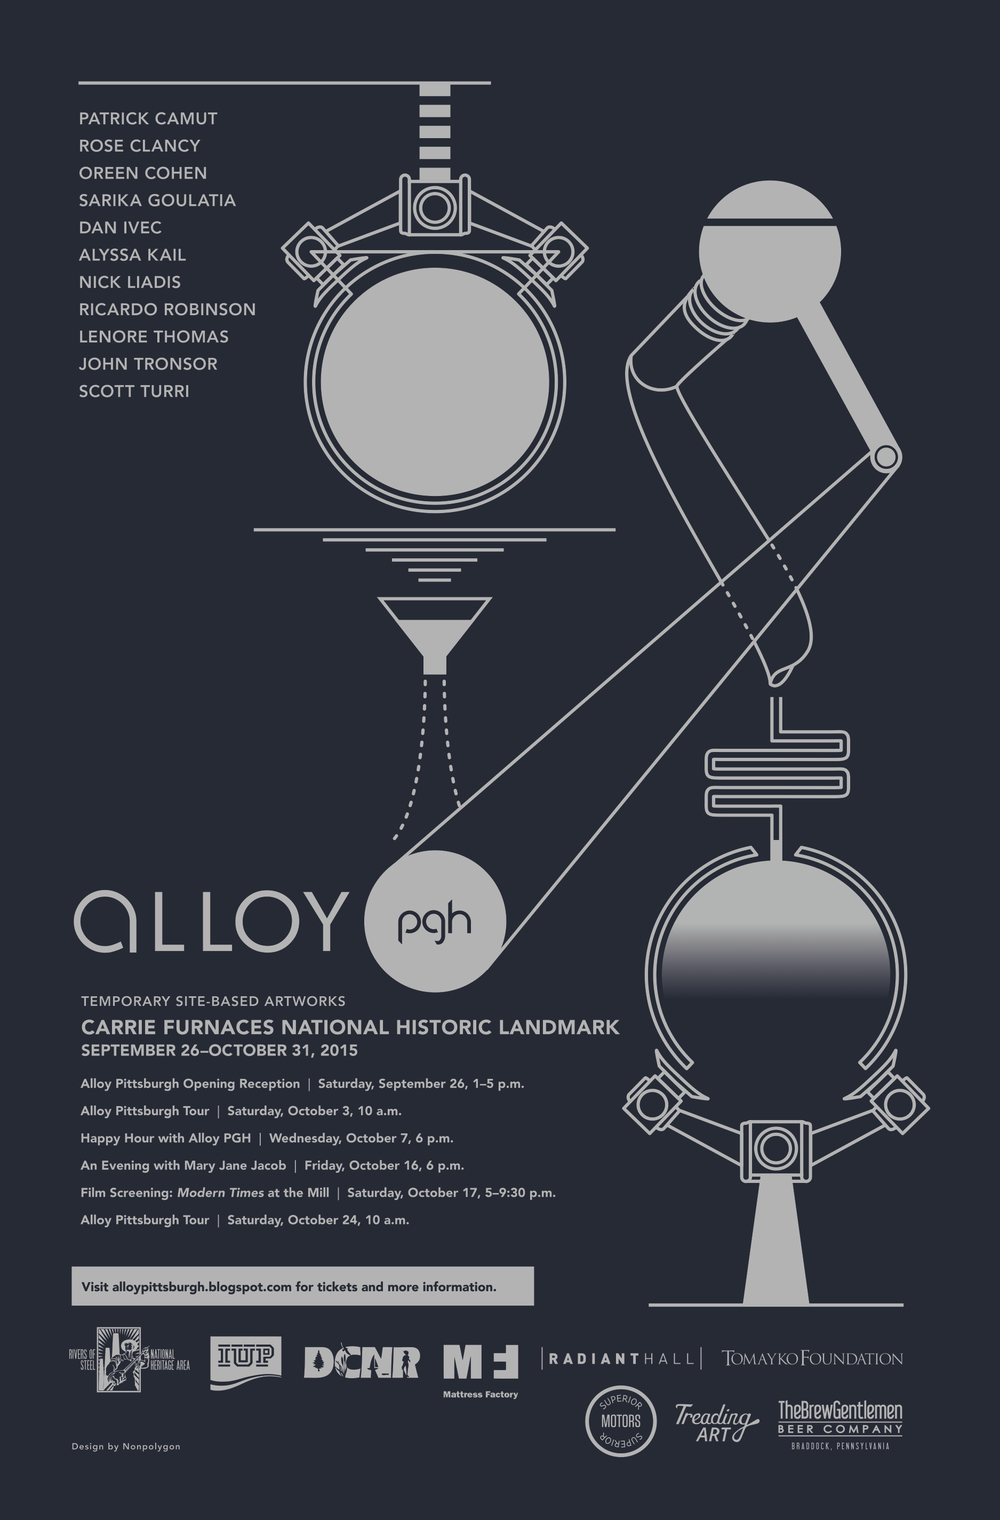 2015_ALLOYPGH_POSTER_12.5X19_FINALCOMP.jpg